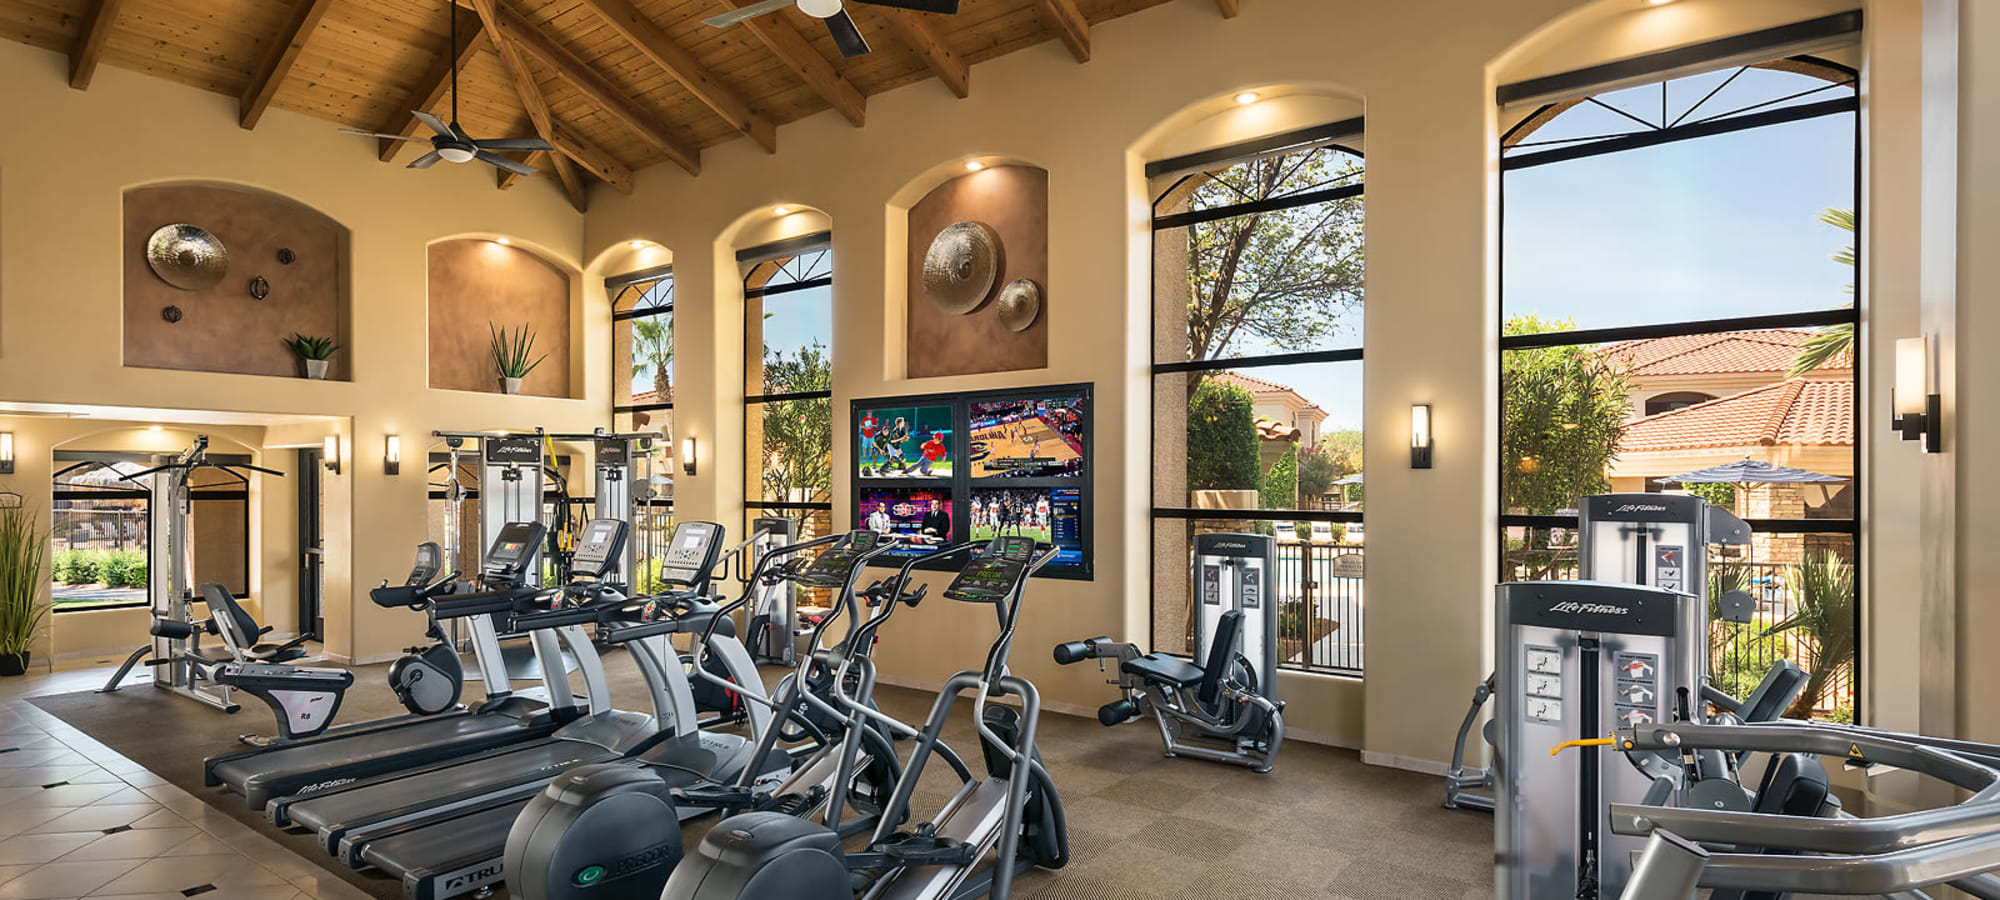 Fitness center with equipment at San Lagos in Glendale, Arizona